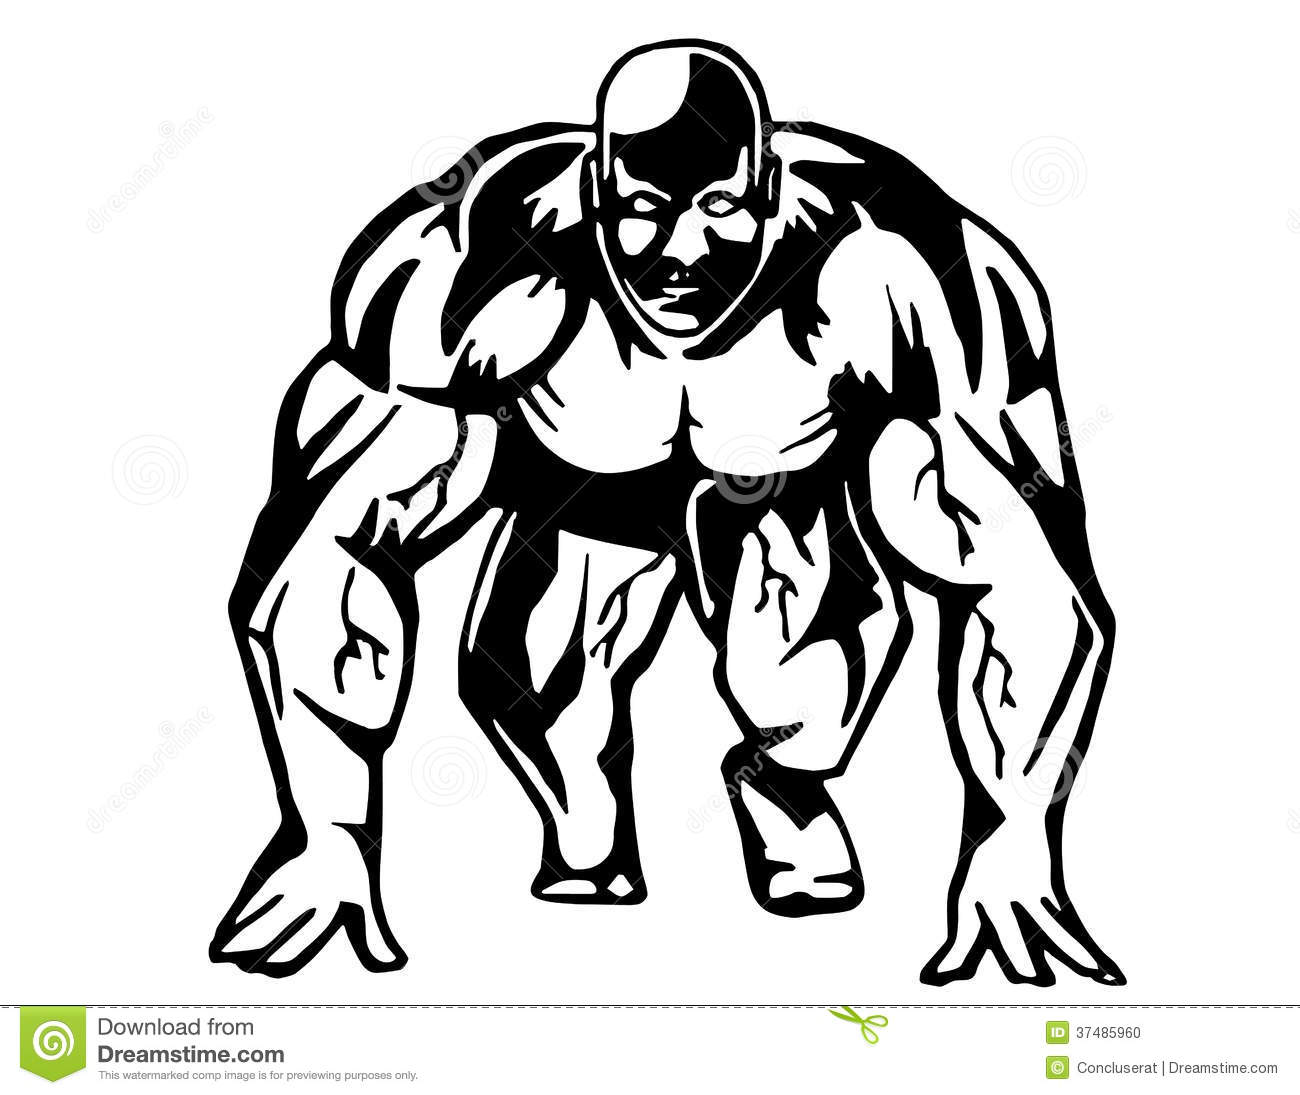 Running bodybuilder is hand drawn and live traced. Fills and outlines ...